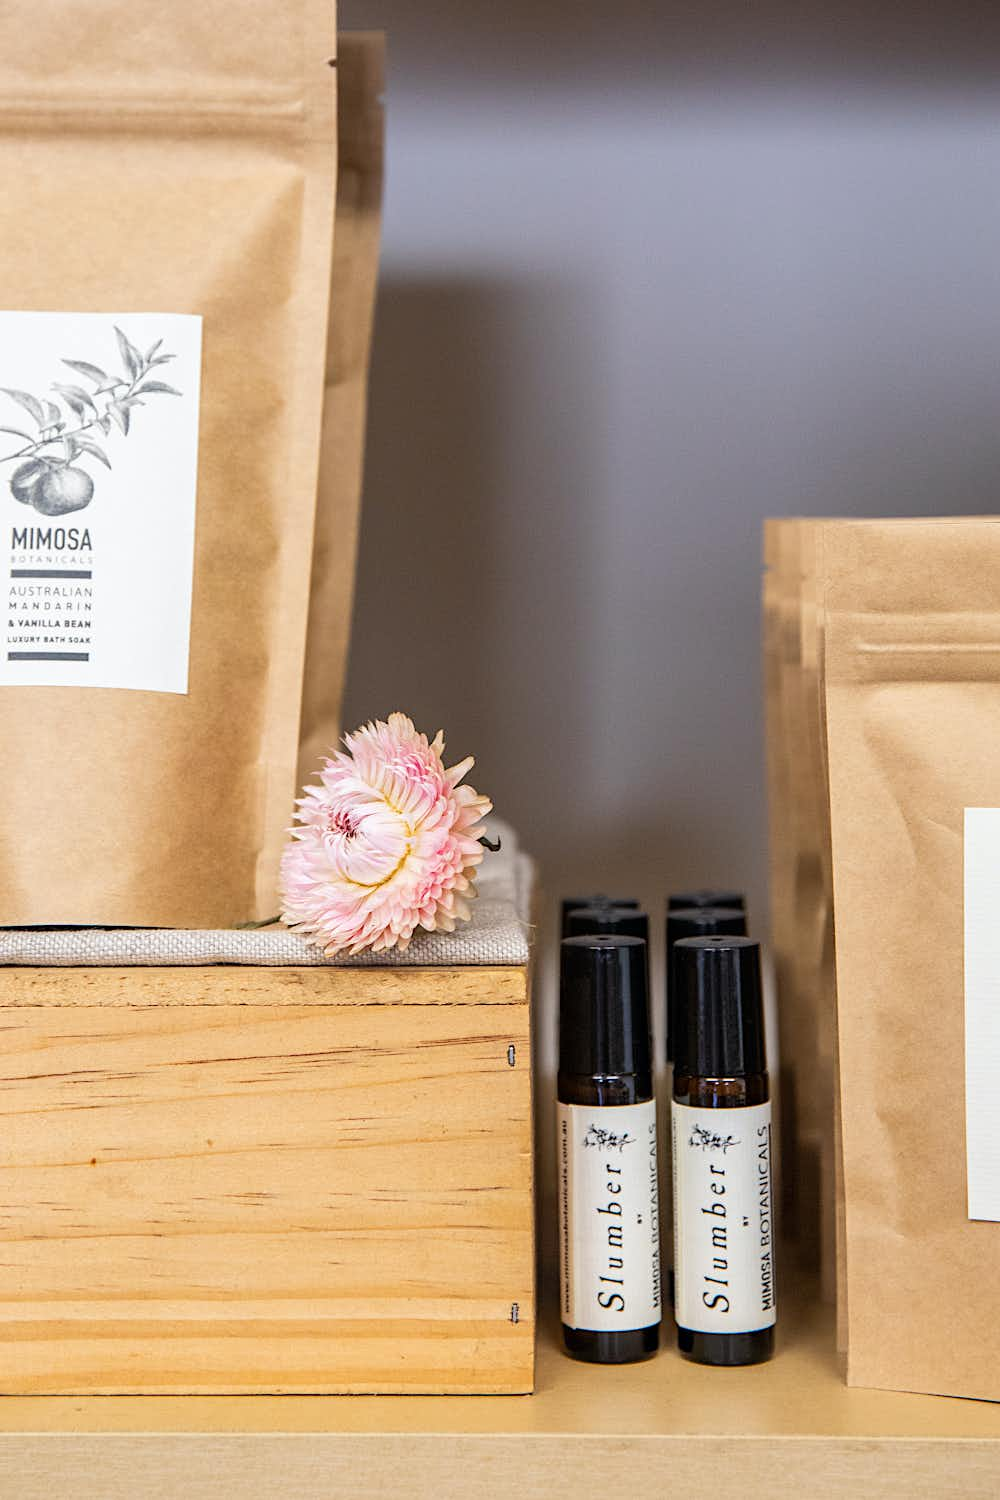 Product display at Mimosa Botanicals, Castlemaine